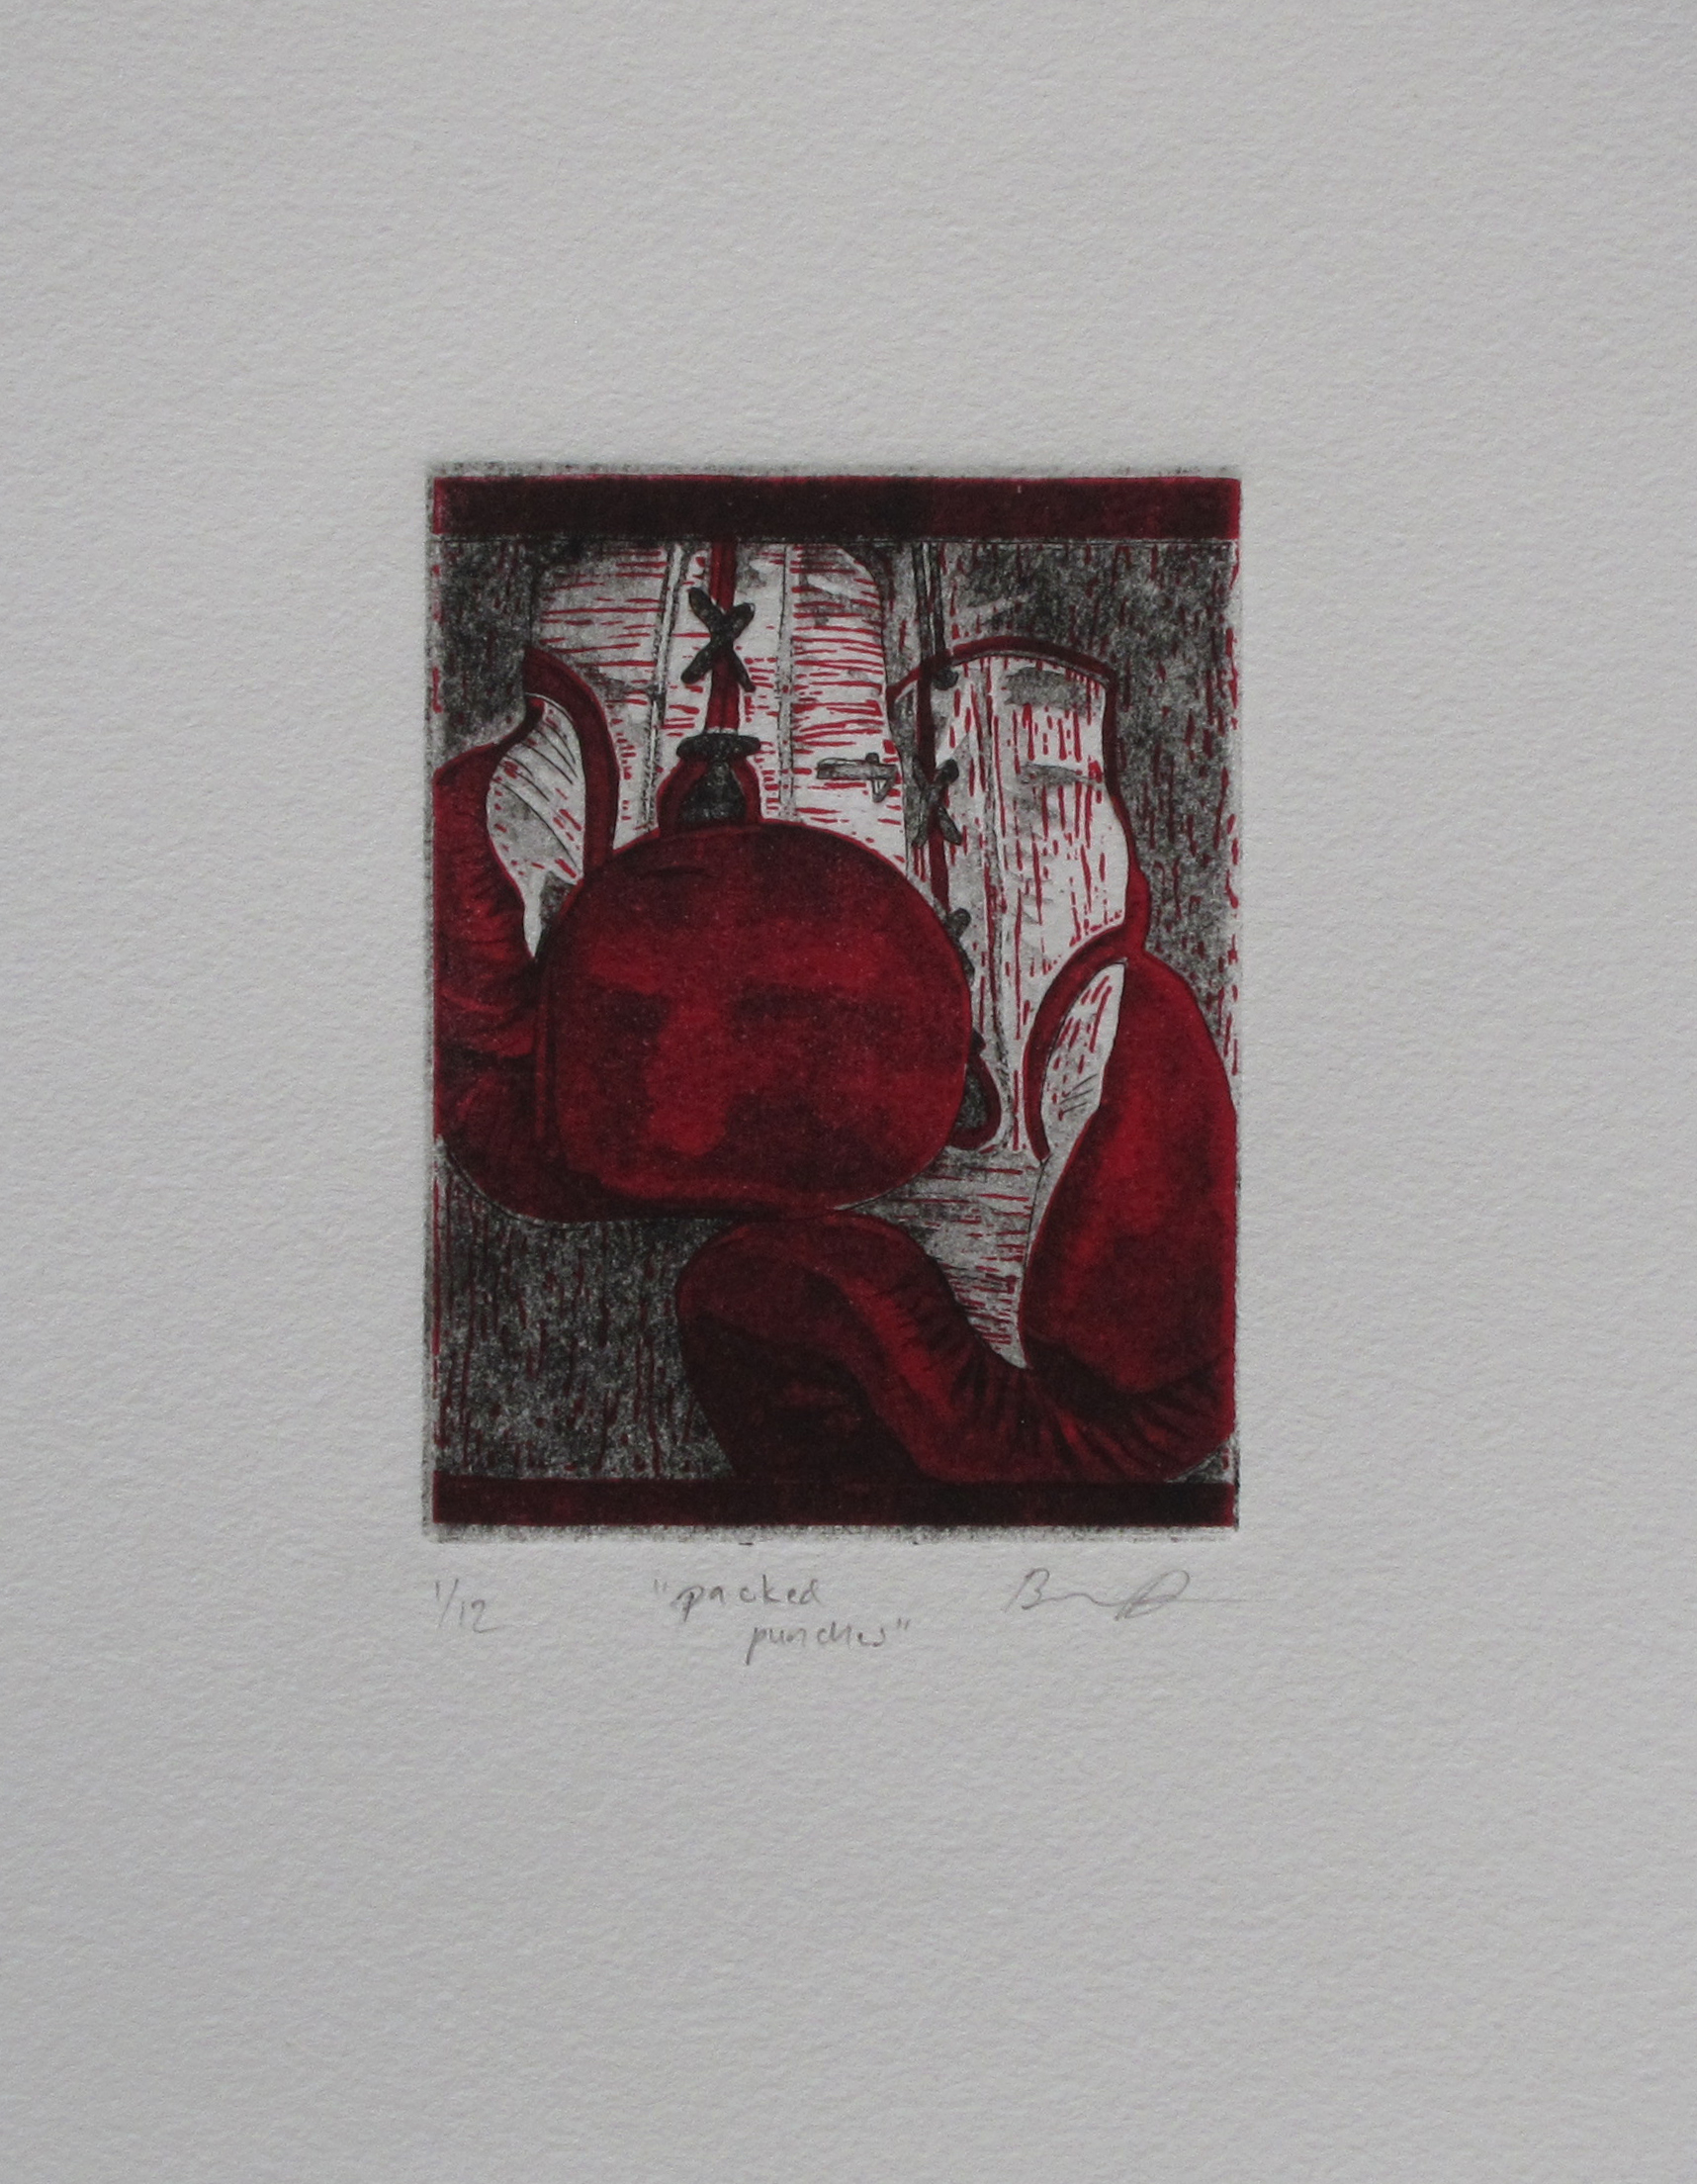 "Packed Punches    - ink on paper, 3x4"" image, etching, aquatint and linocut"